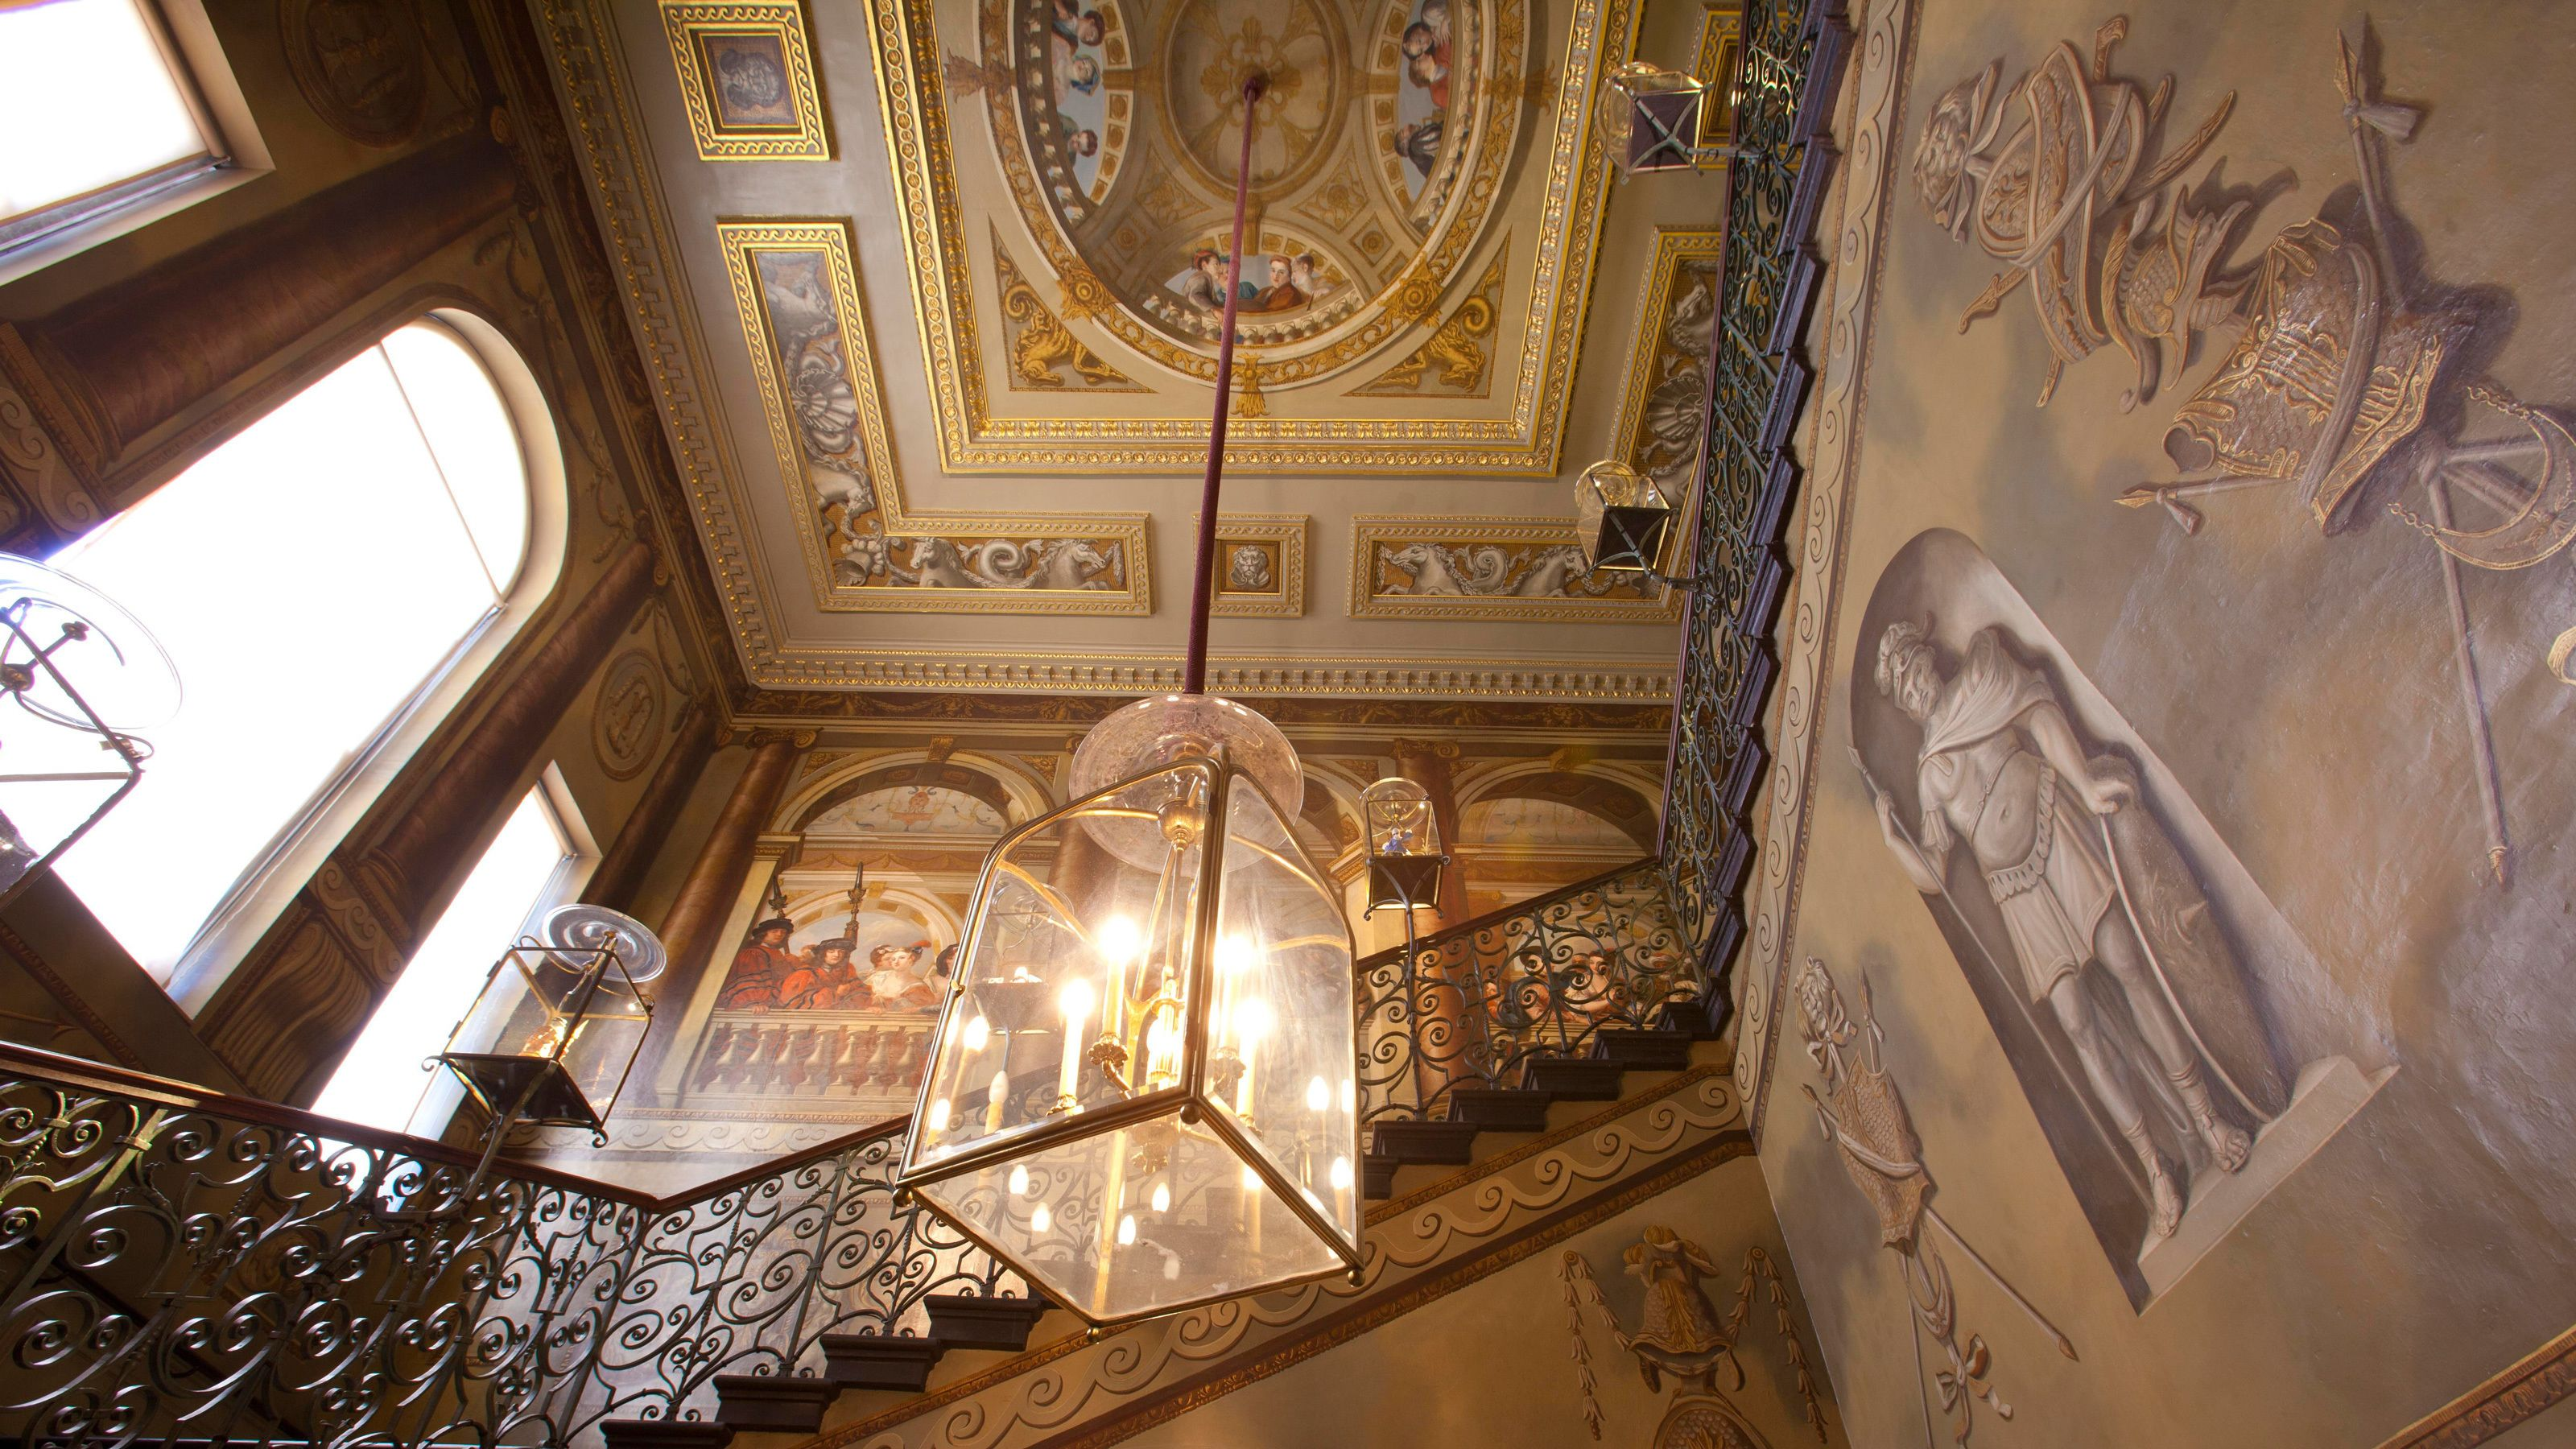 intricate artwork within staircase and lamps in Kensington Palace in London